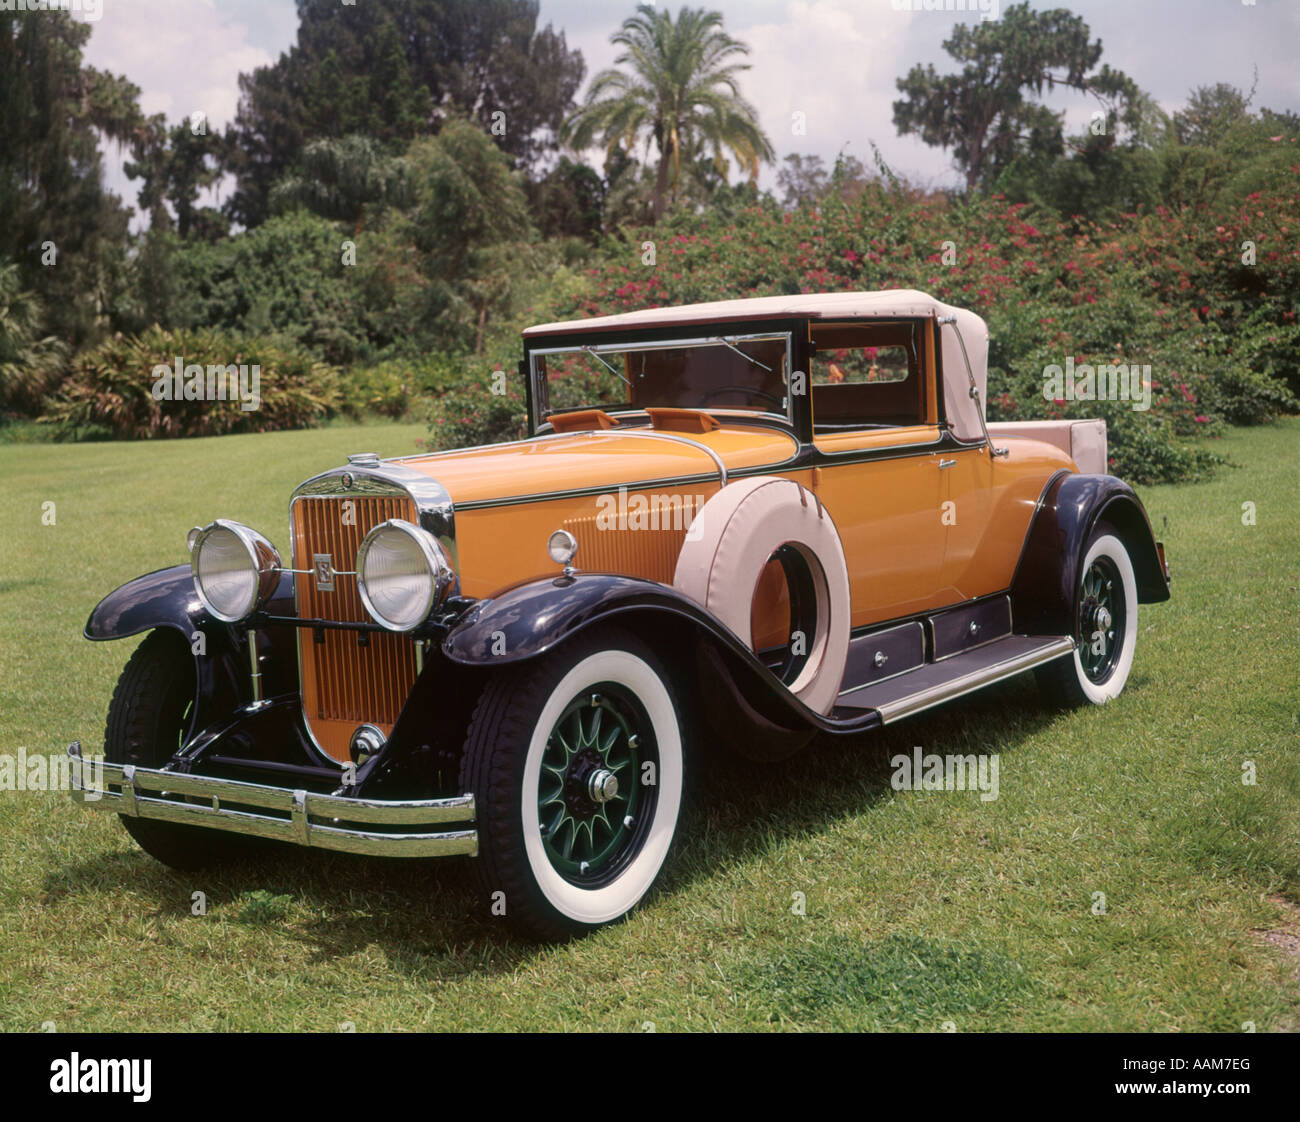 Car Stock Photos: 1920s Car Stock Photos & 1920s Car Stock Images